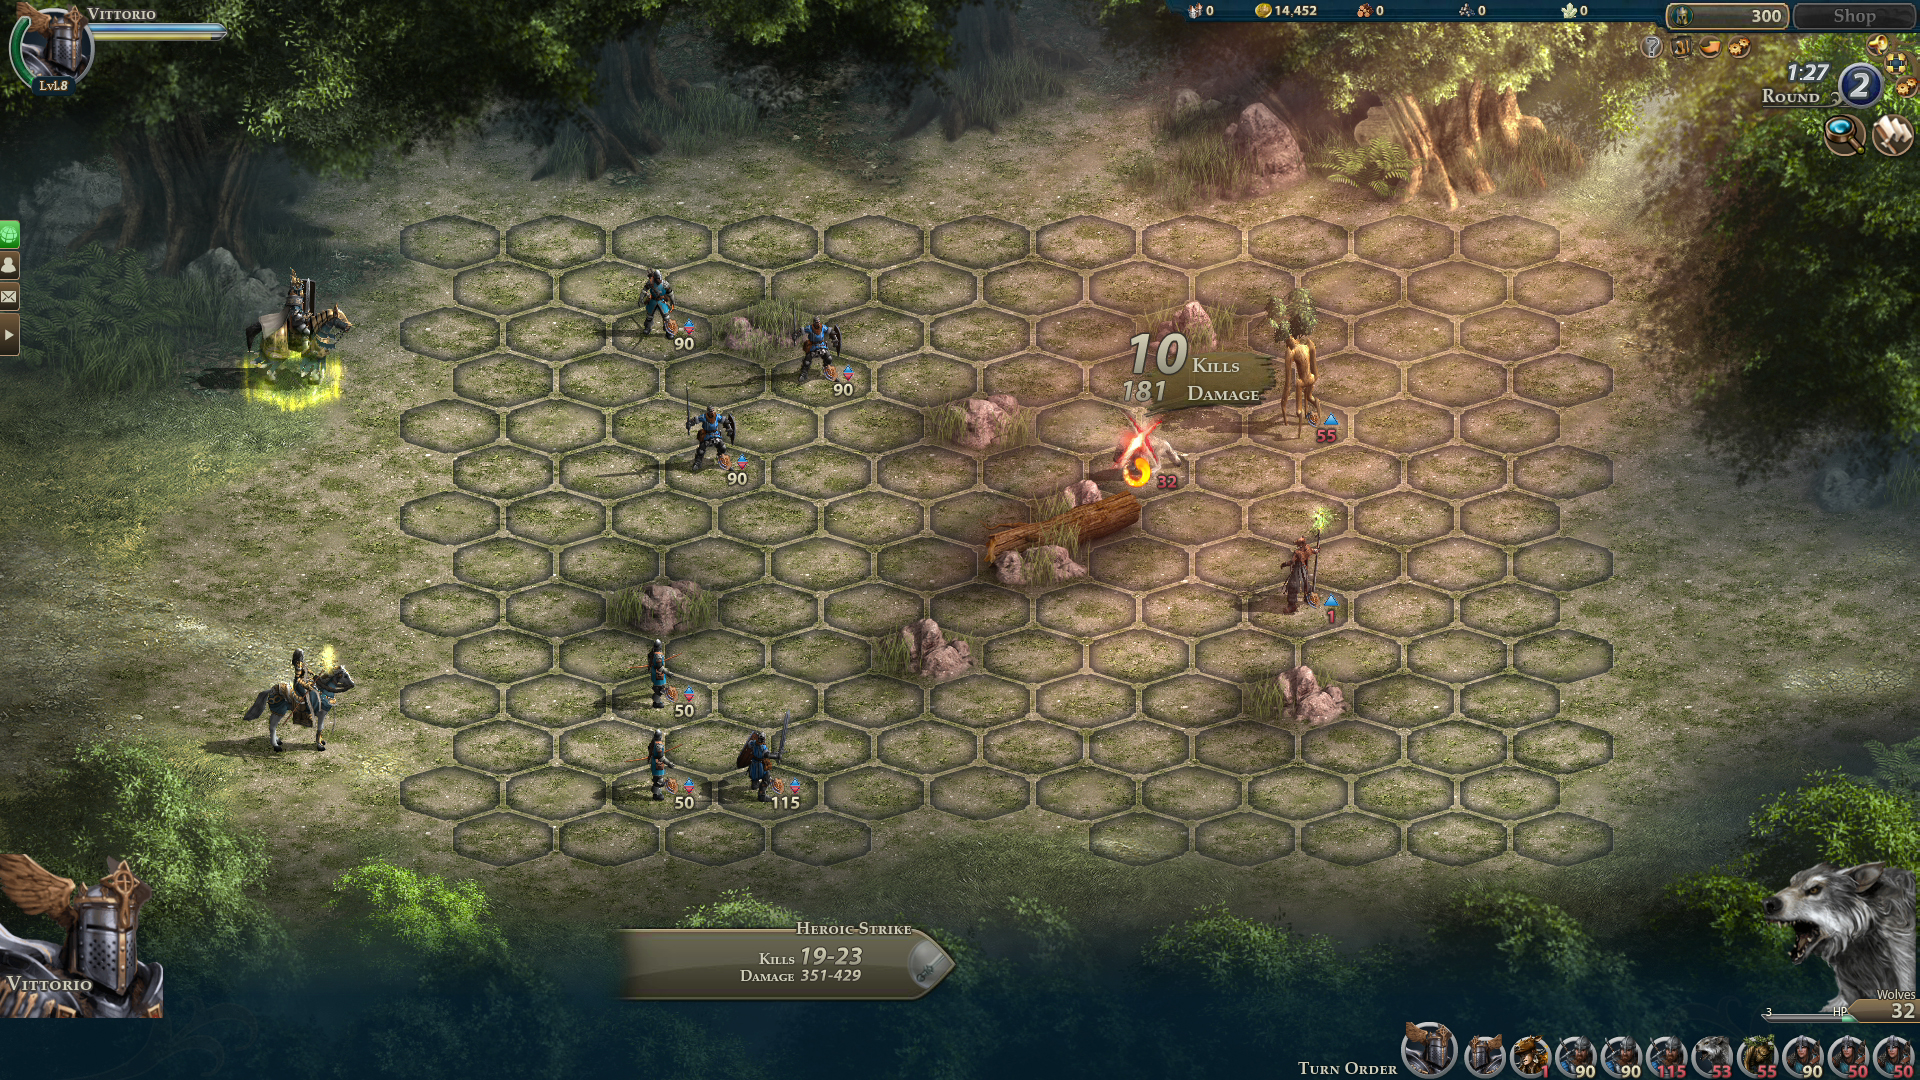 Heroes Of Might And Magic Online Backgrounds, Compatible - PC, Mobile, Gadgets| 1920x1080 px